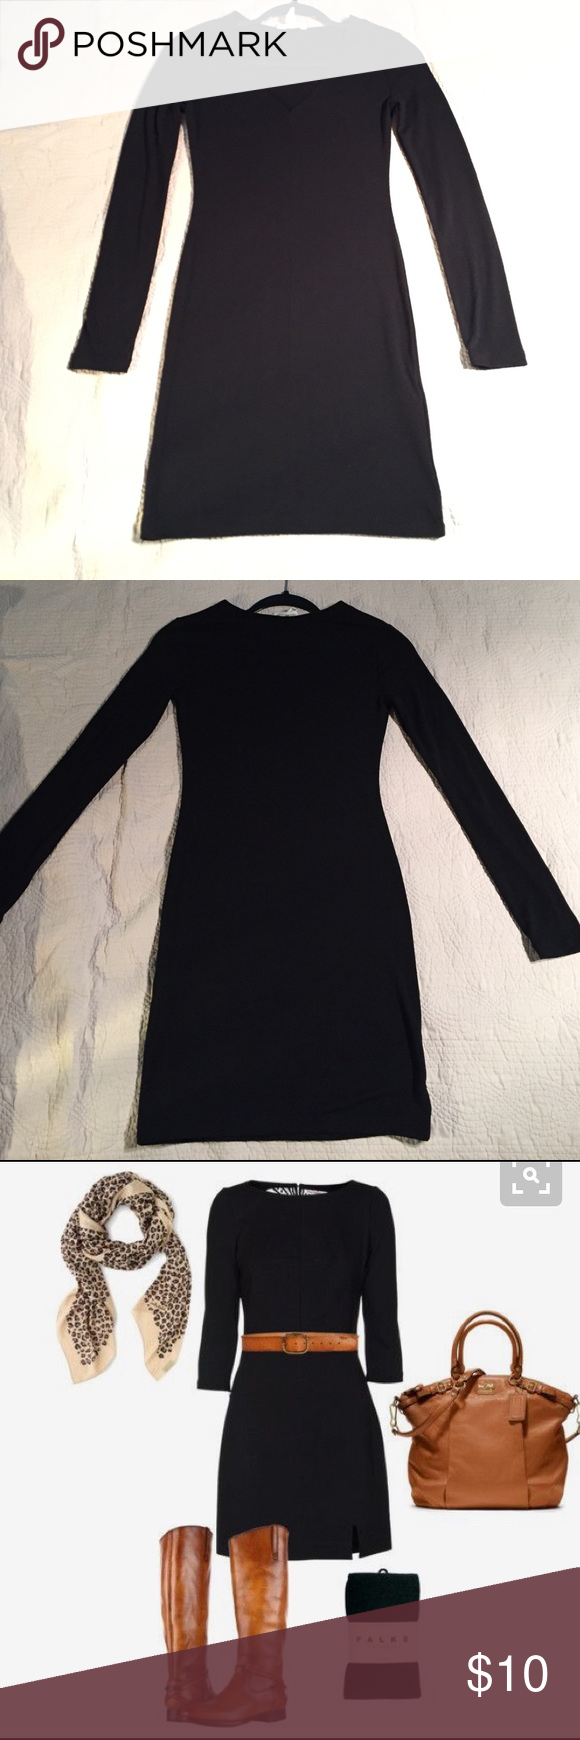 "Black dress Dress it up or down. This is a great basic black dress to have in your wardrobe. Polyester/Rayon/Spandex makes it soft, stretchy, & comfy. V neckline & long sleeves. Measured flat= 34"" top to bottom. 14"" across unstretched. Size S Forever 21 Dresses Long Sleeve"